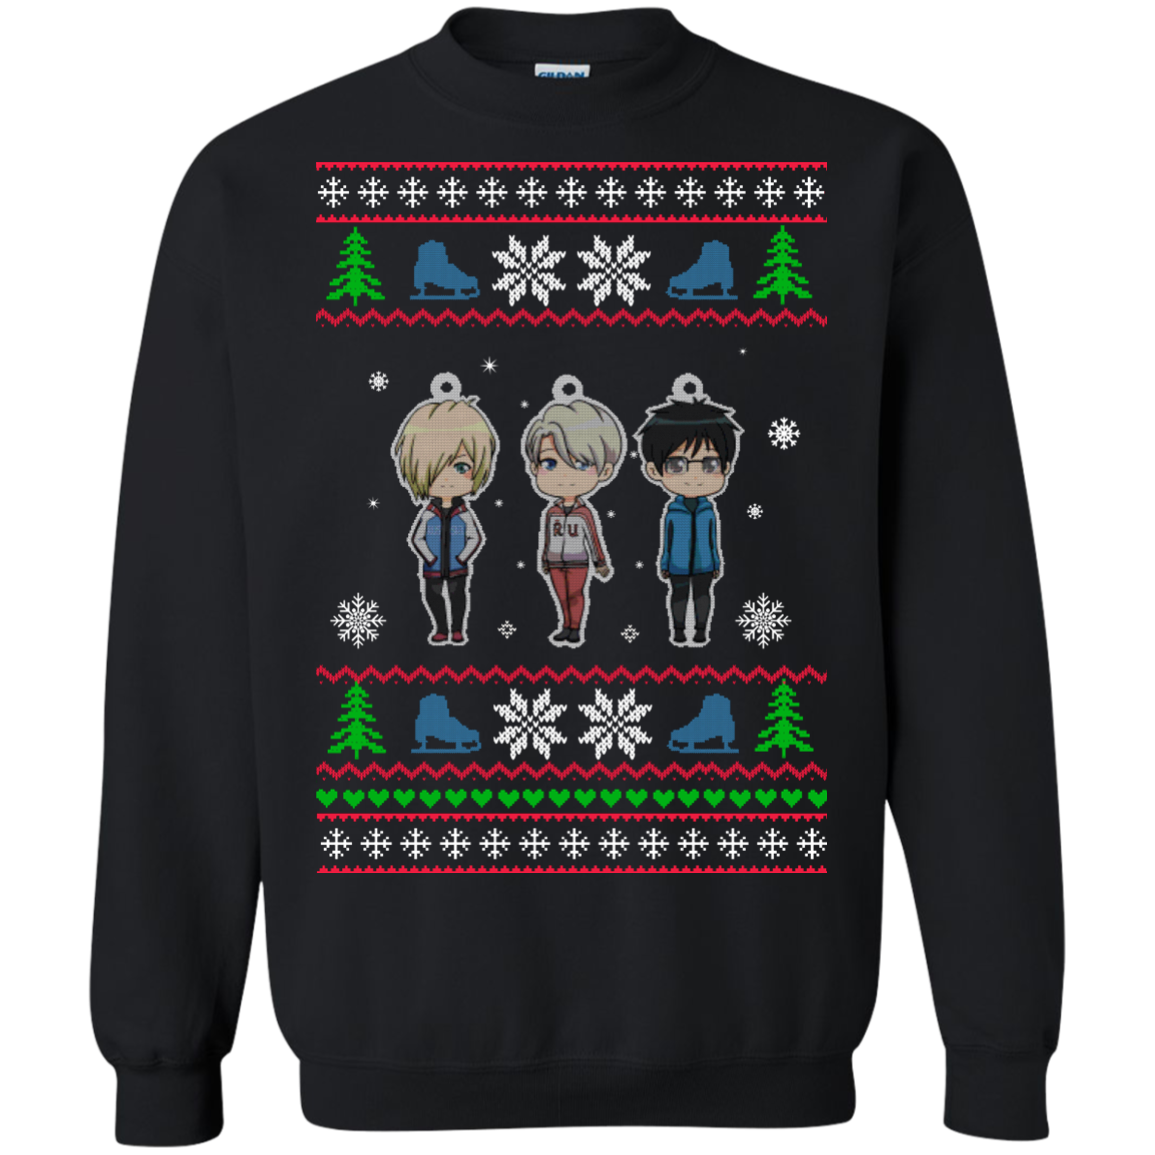 Yuri on Ice Christmas Sweater, T Shirt, Long Sleeve